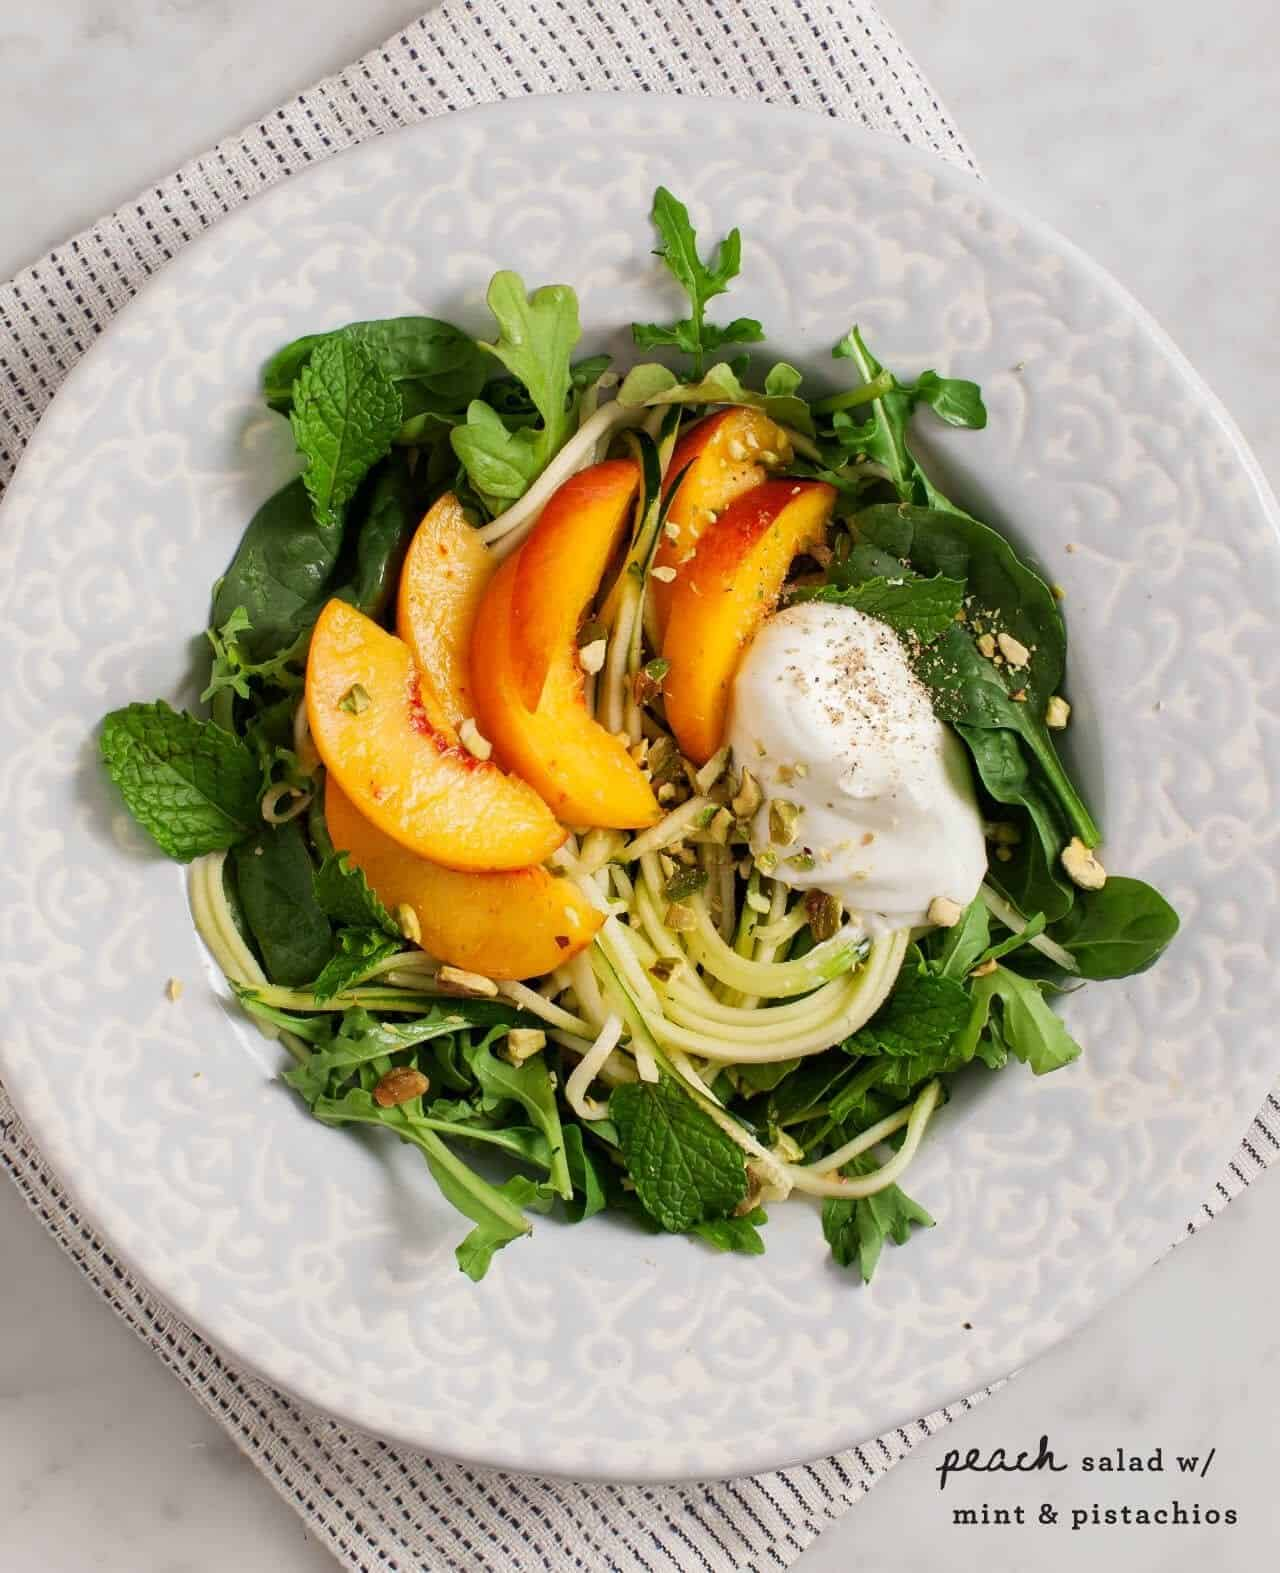 Peach Salad with Mint, Pistachios and Coriander Yogurt / @loveandlemons